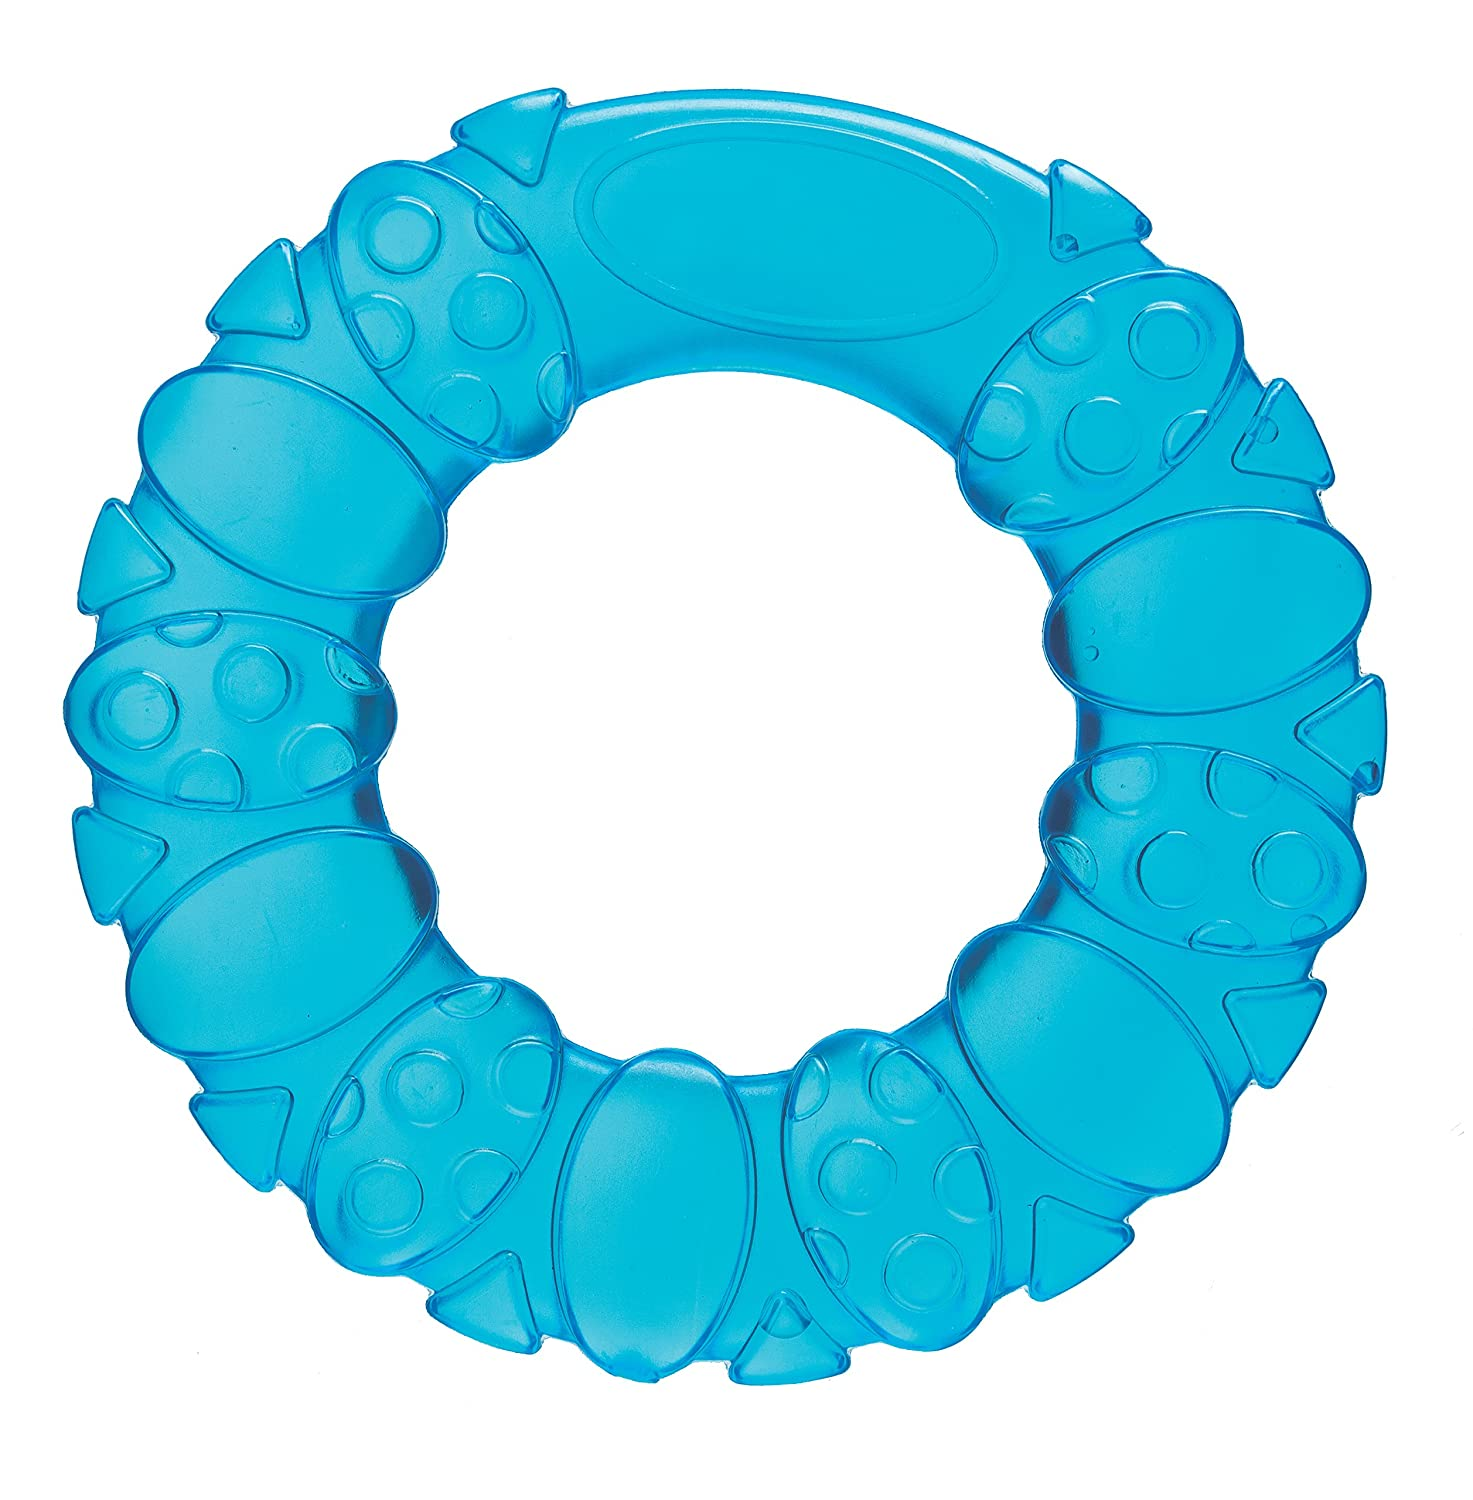 Playgro 0186401 Soothing Circle Water Teether - Blue for Baby Infant Toddler Children, Playgro is Encouraging Imagination with STEM/STEM for a Bright Future - Great Start for a World of Learning